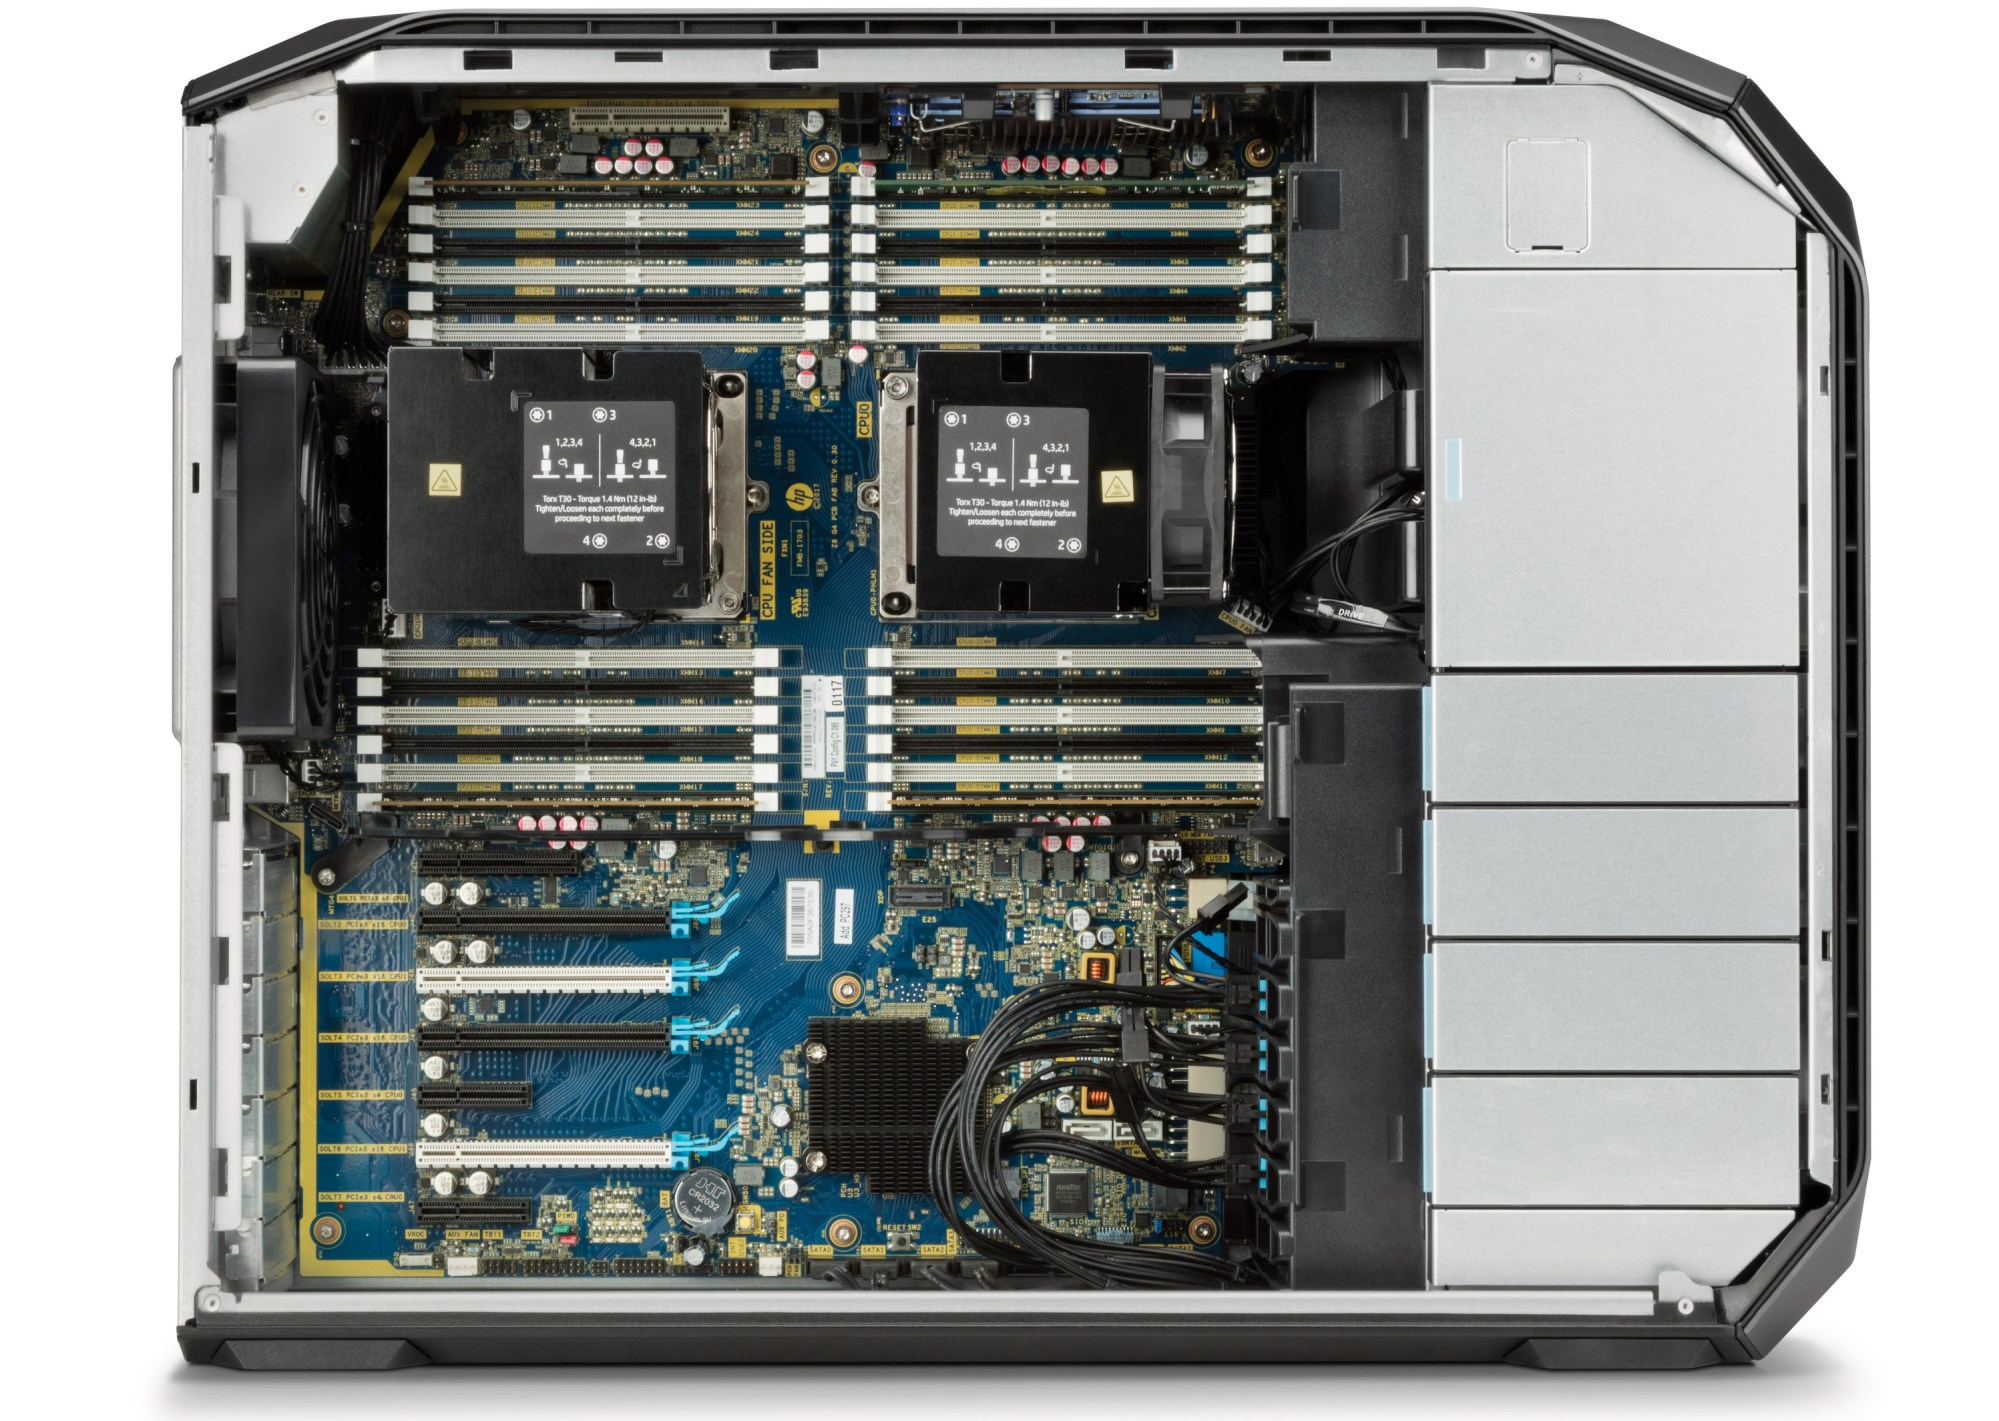 hight resolution of one of the key components of all pcs is its microprocessor when it comes to the hp z8 it is based on up to two intel xeon platinum 8180 with 28 cores